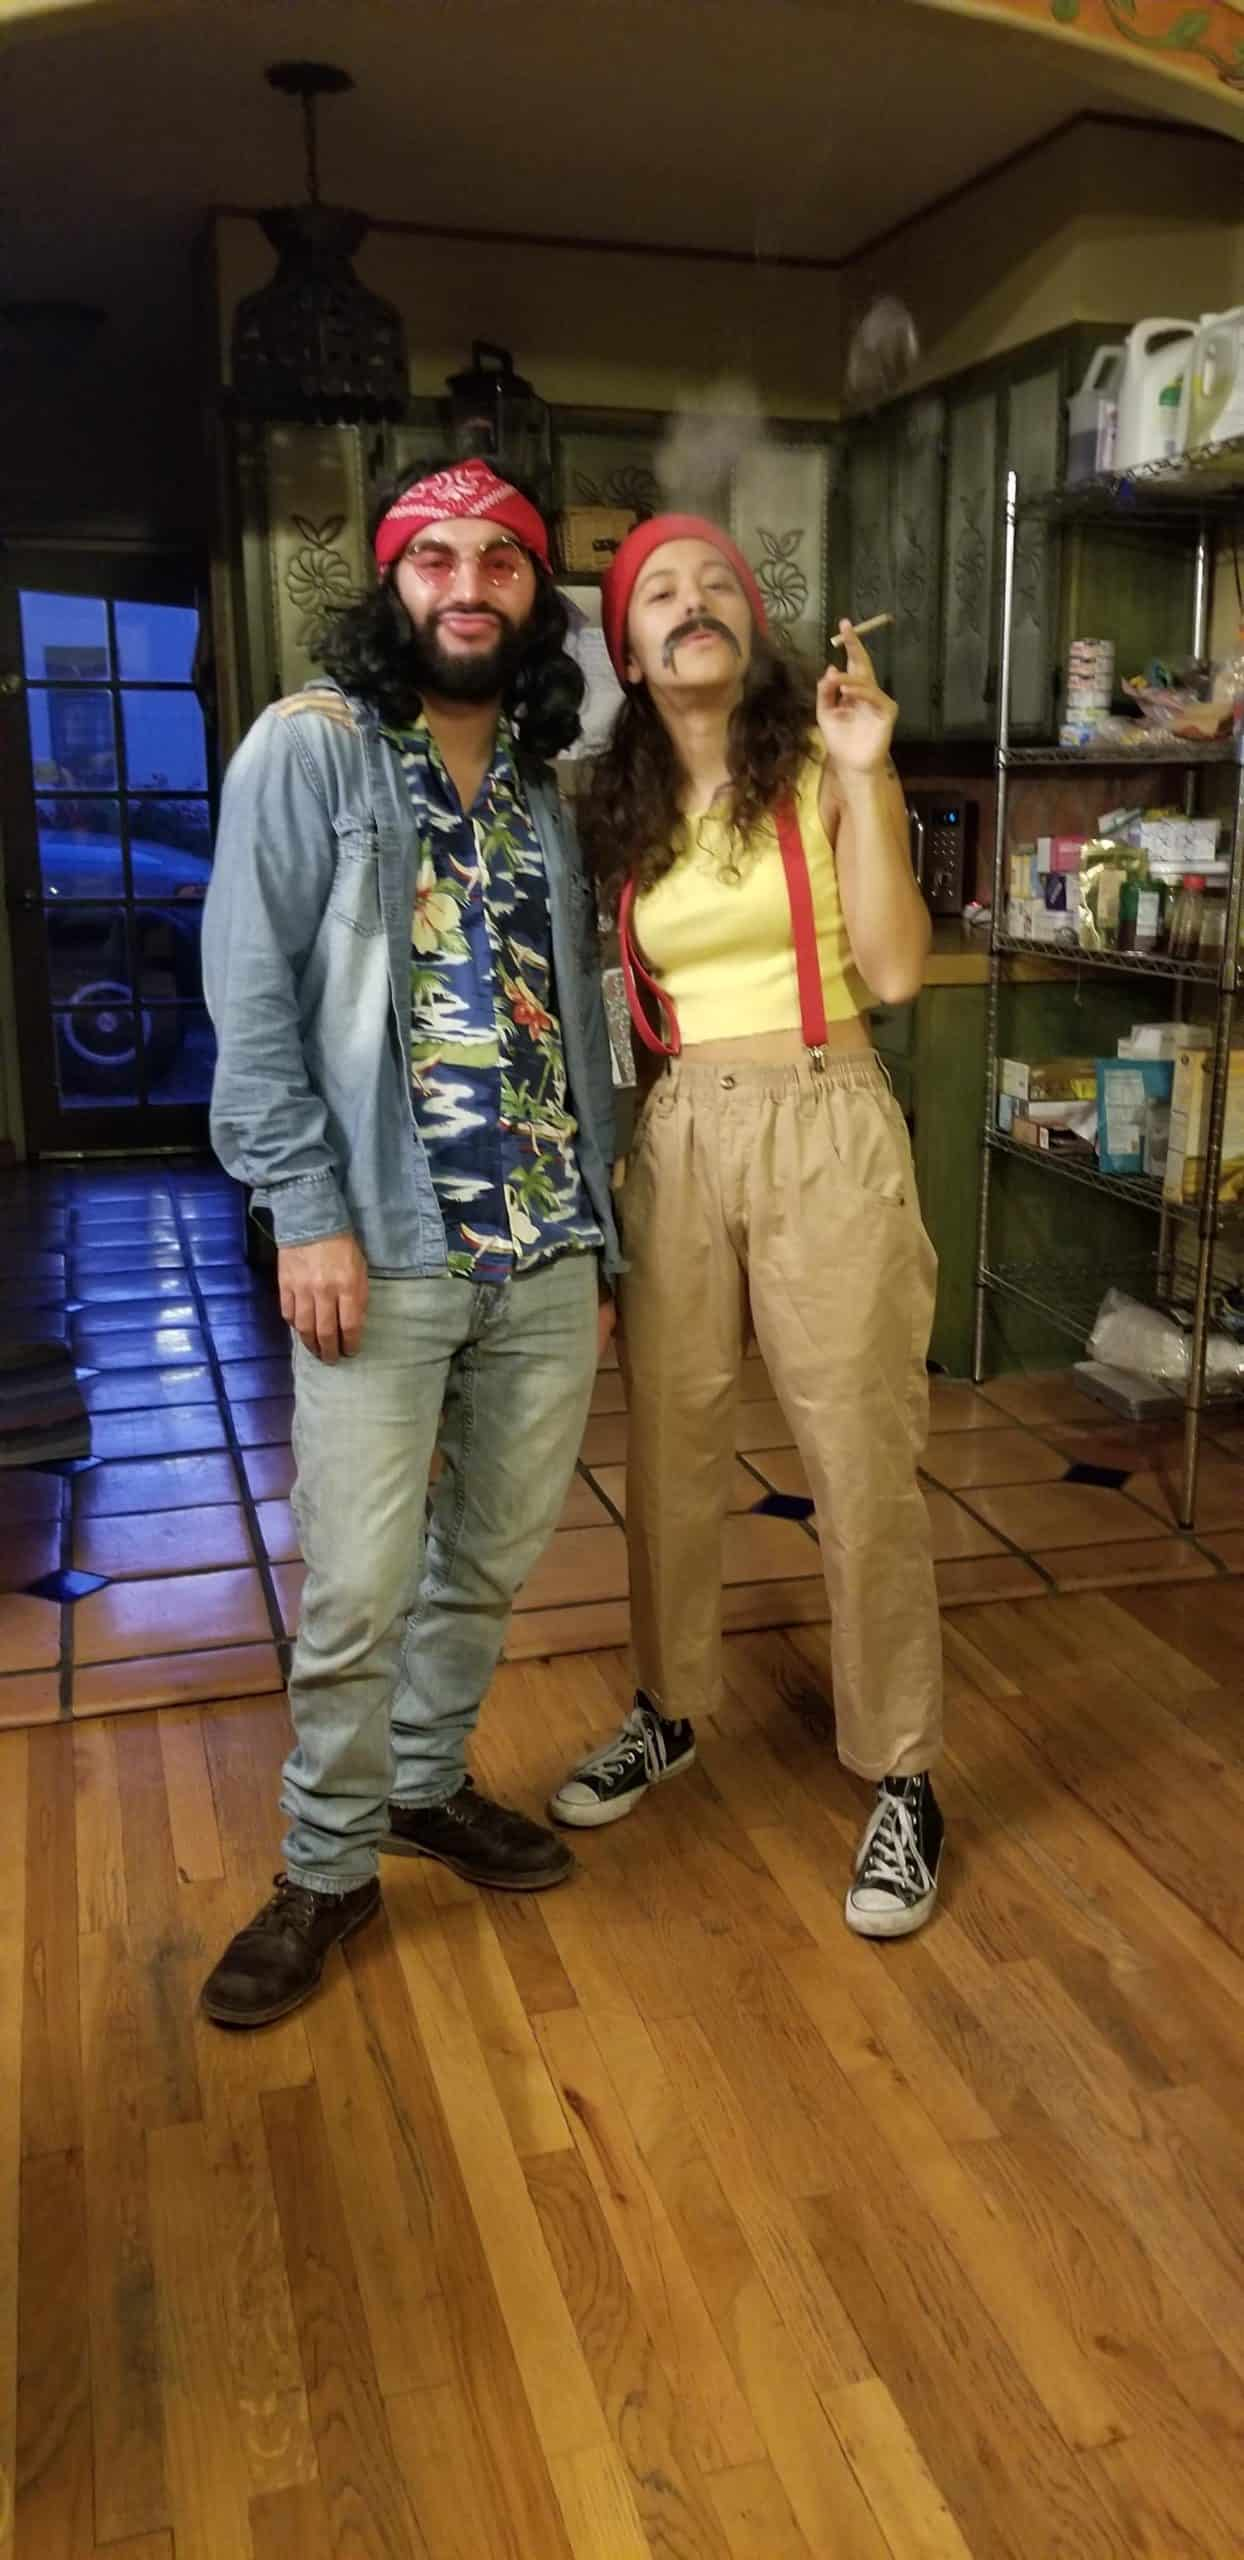 Cheech and Chong for Halloween costume